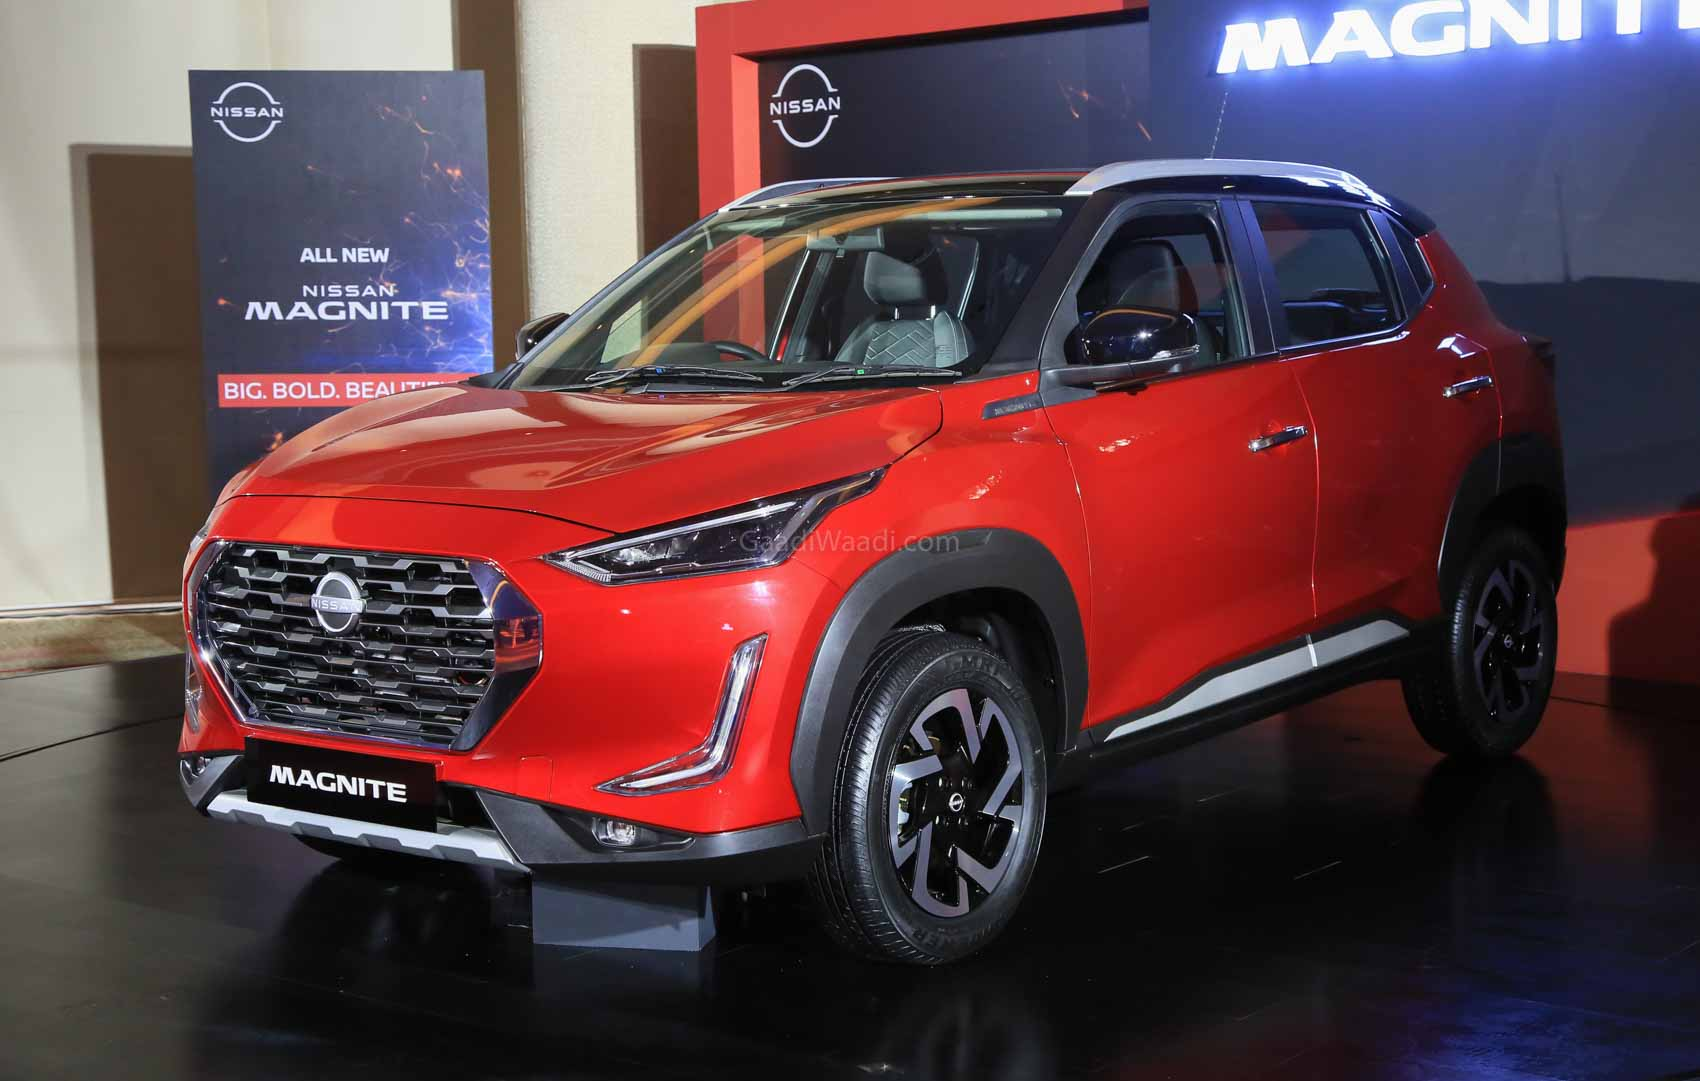 Nissan Magnite To Create A Niche Among Compact Suvs With Its Pricing